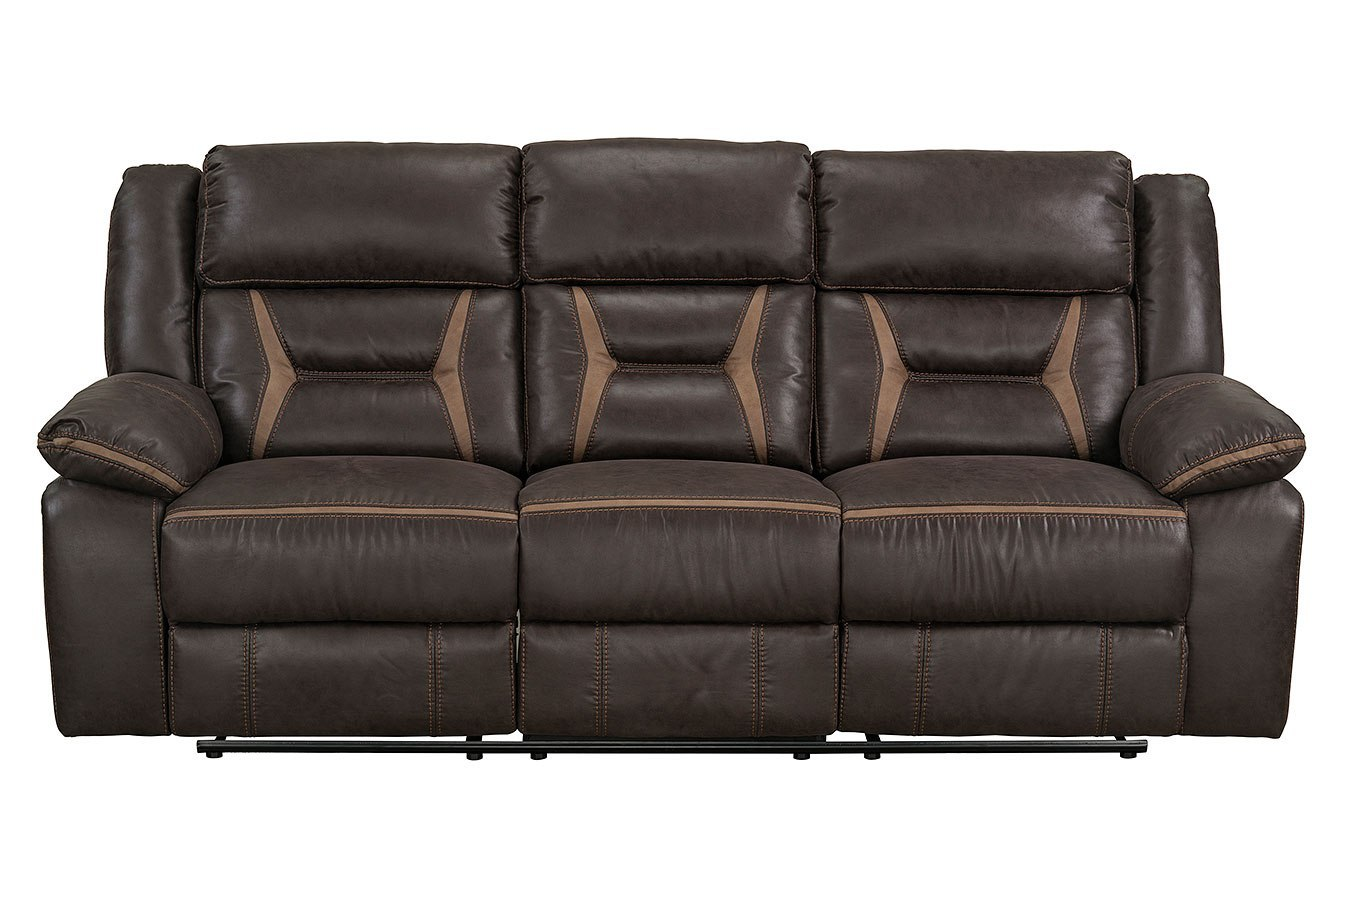 Acropolis Reclining Sofa W Drop Down Table Chocolate By